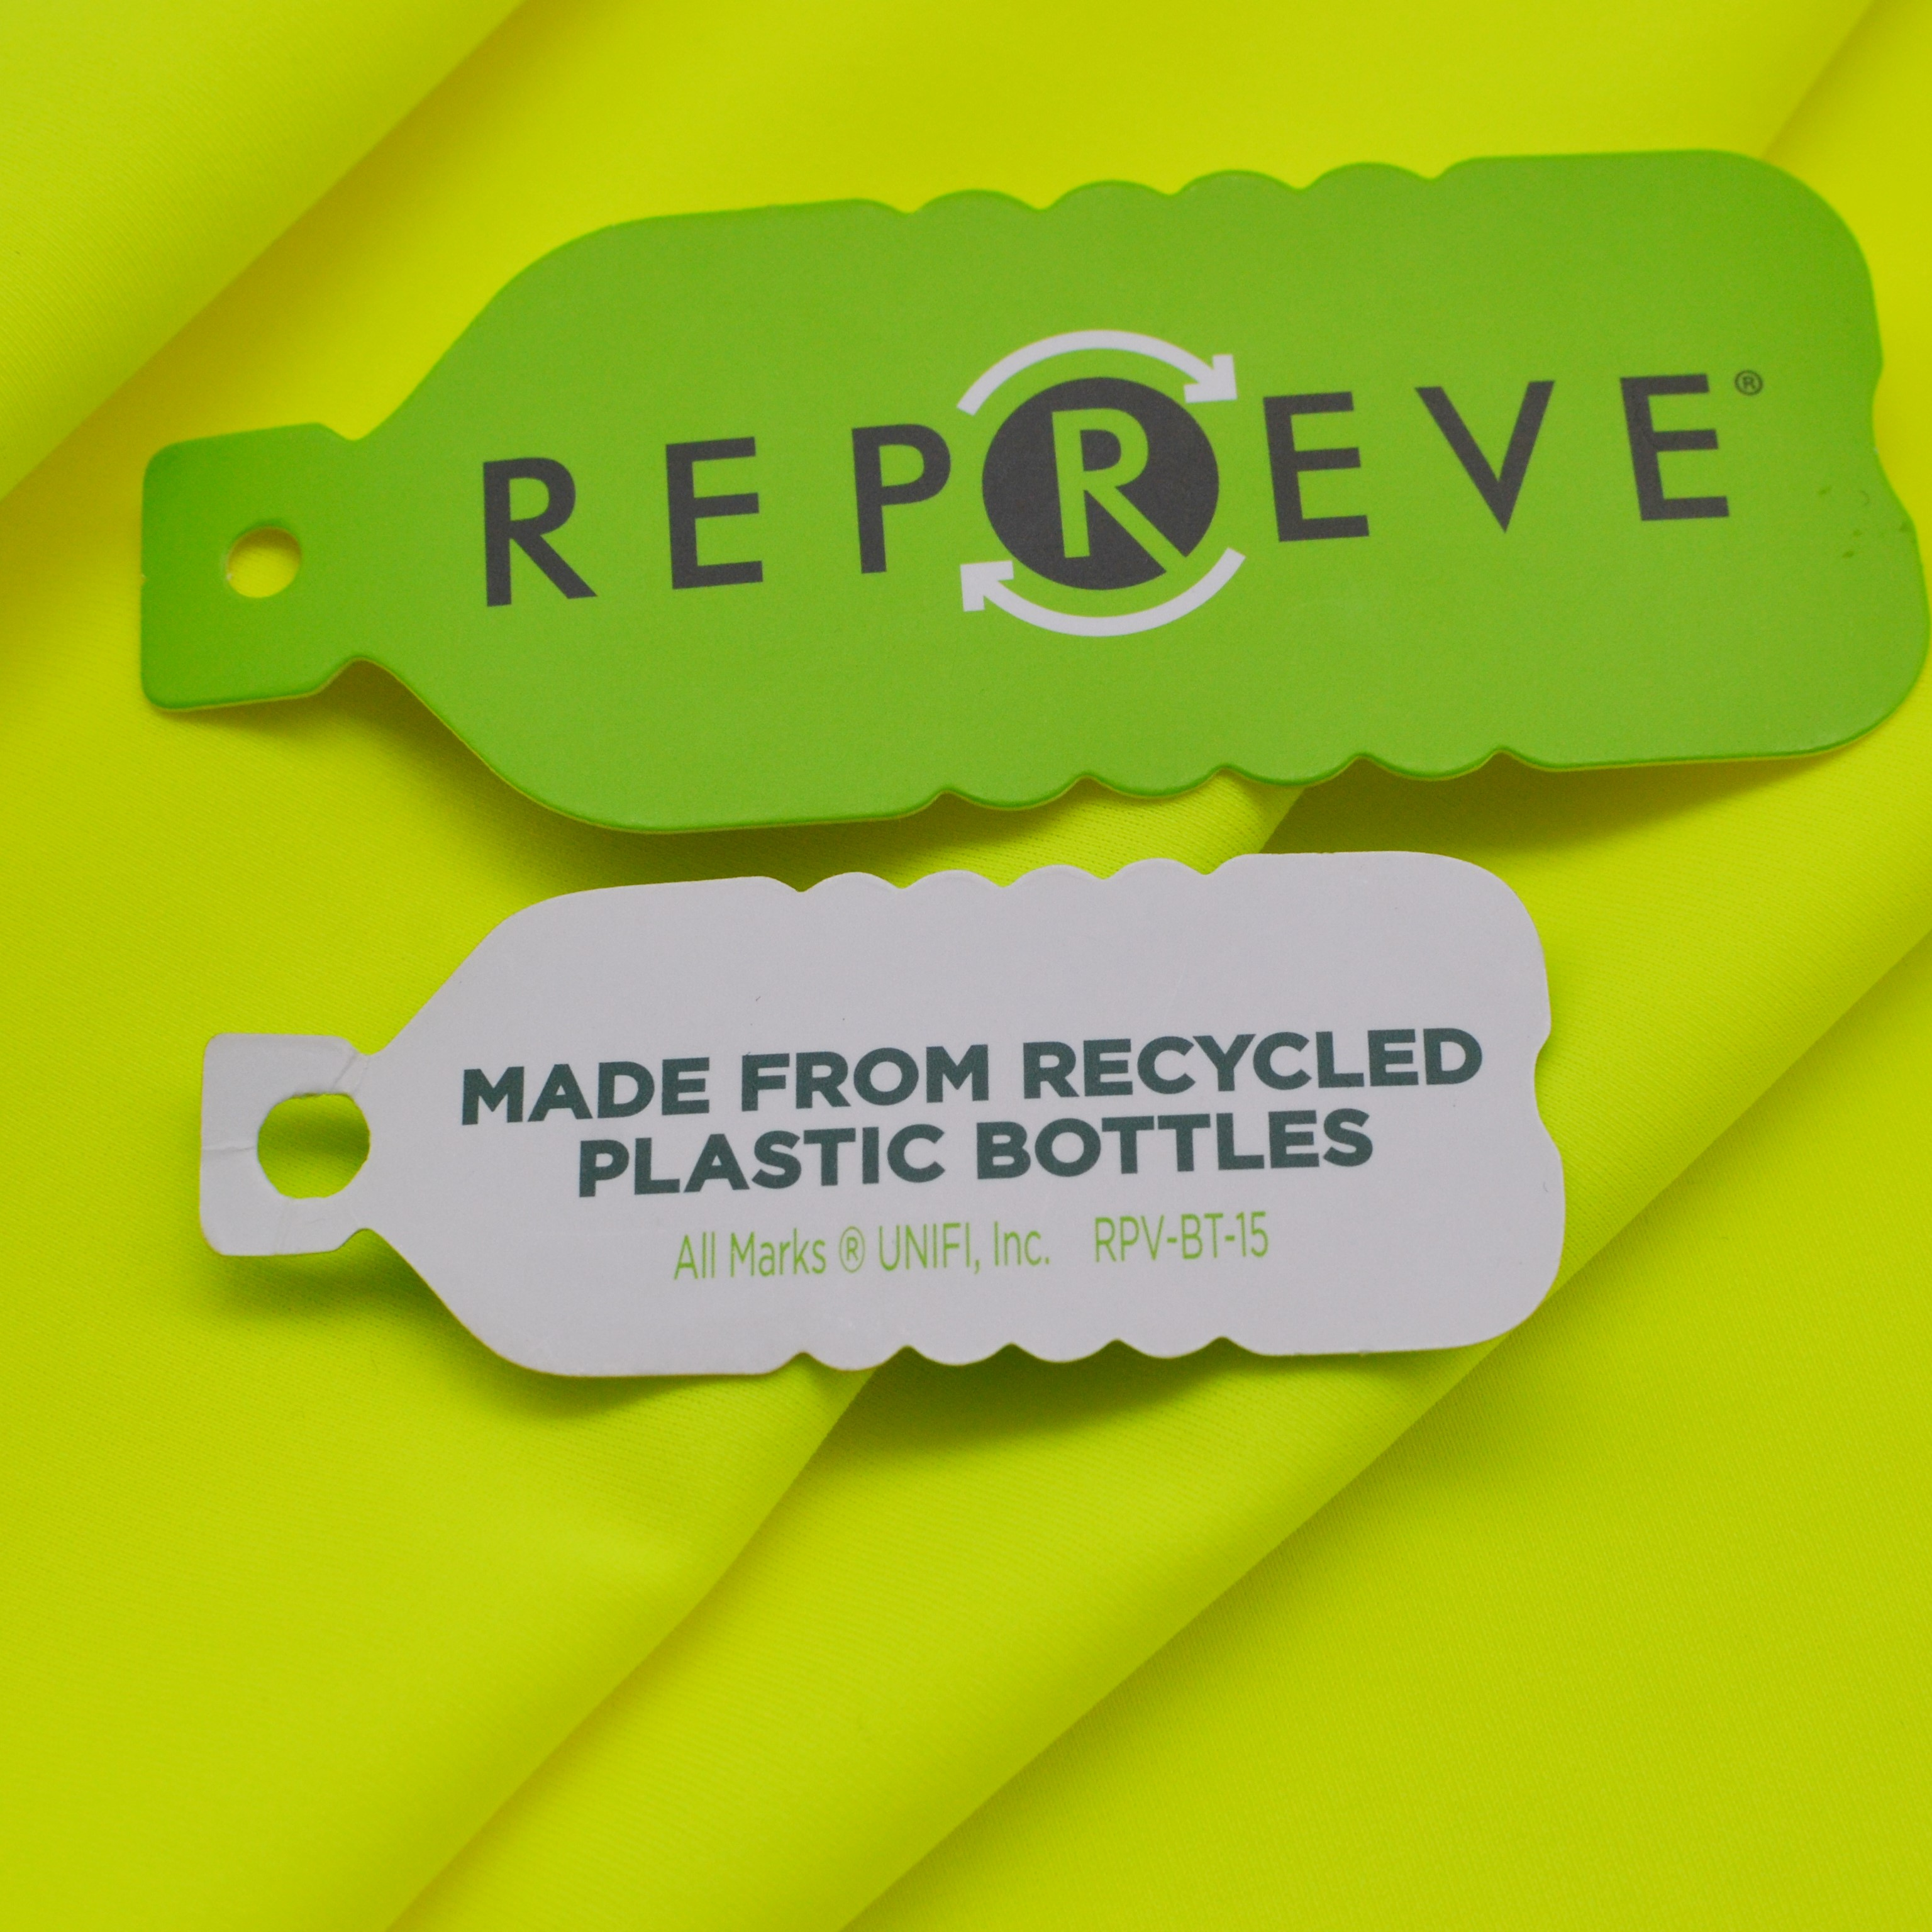 repreve hangtag recycled plastic clothing manufacturers